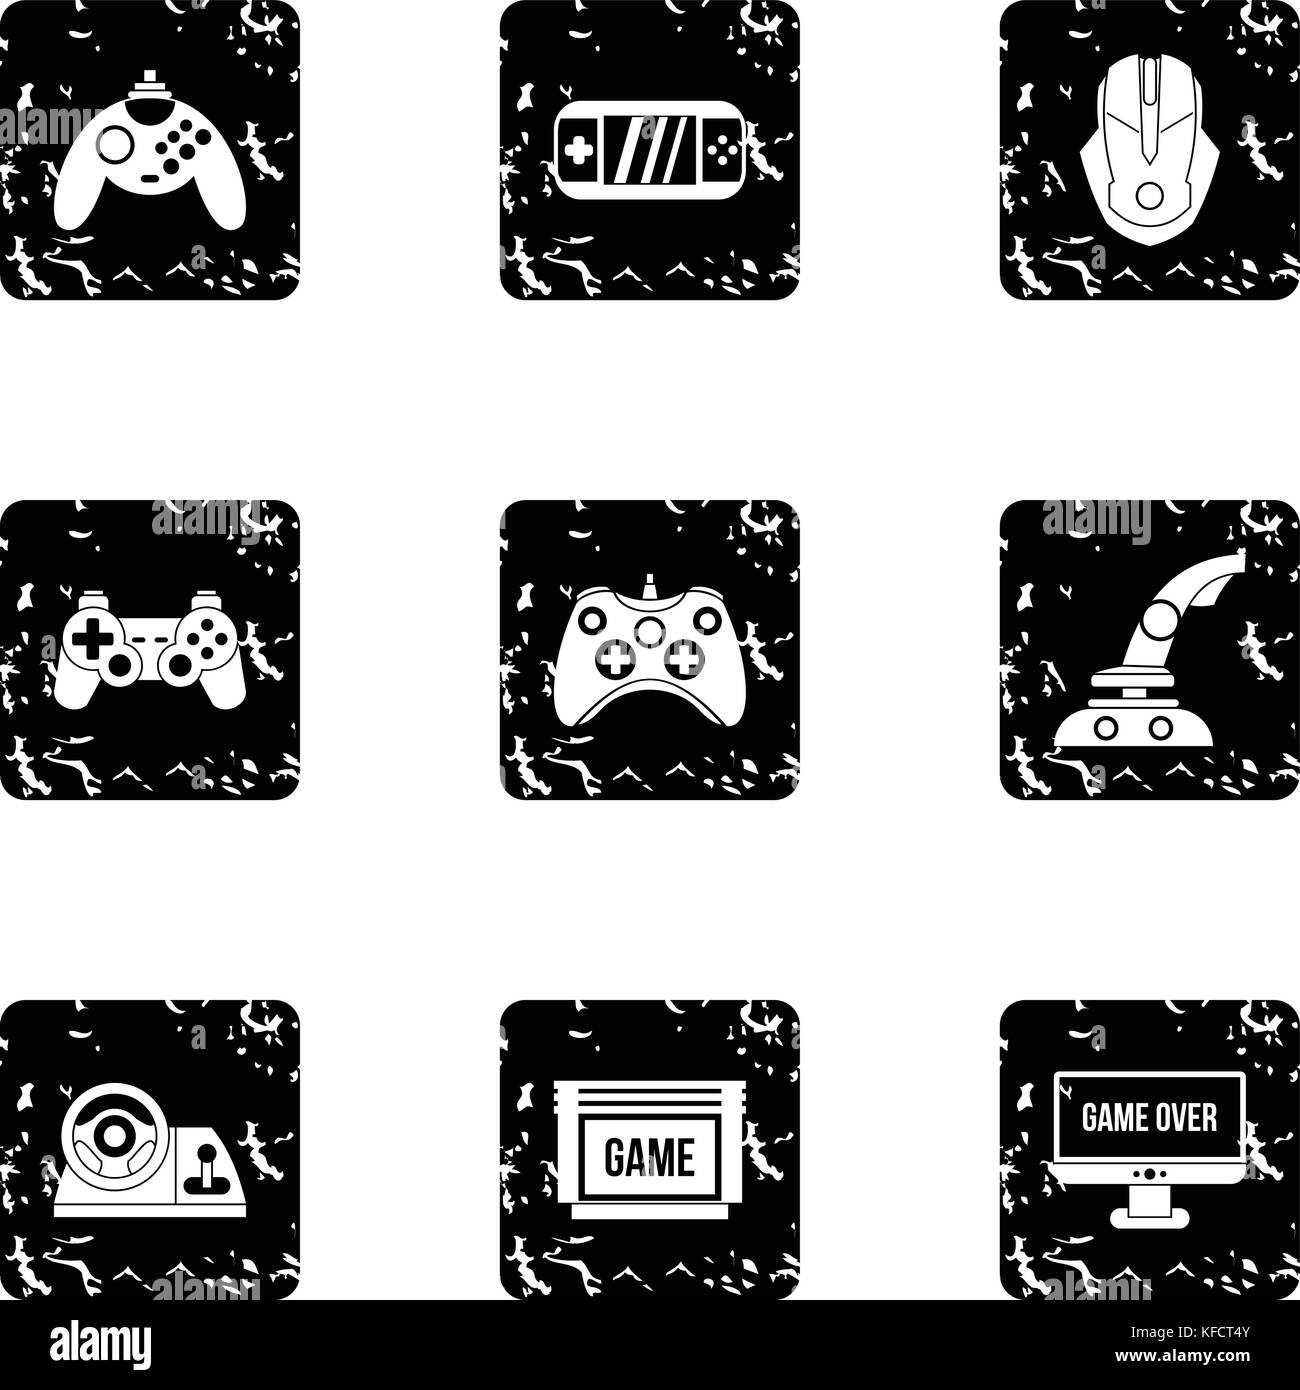 Computer games icons set, grunge style - Stock Image